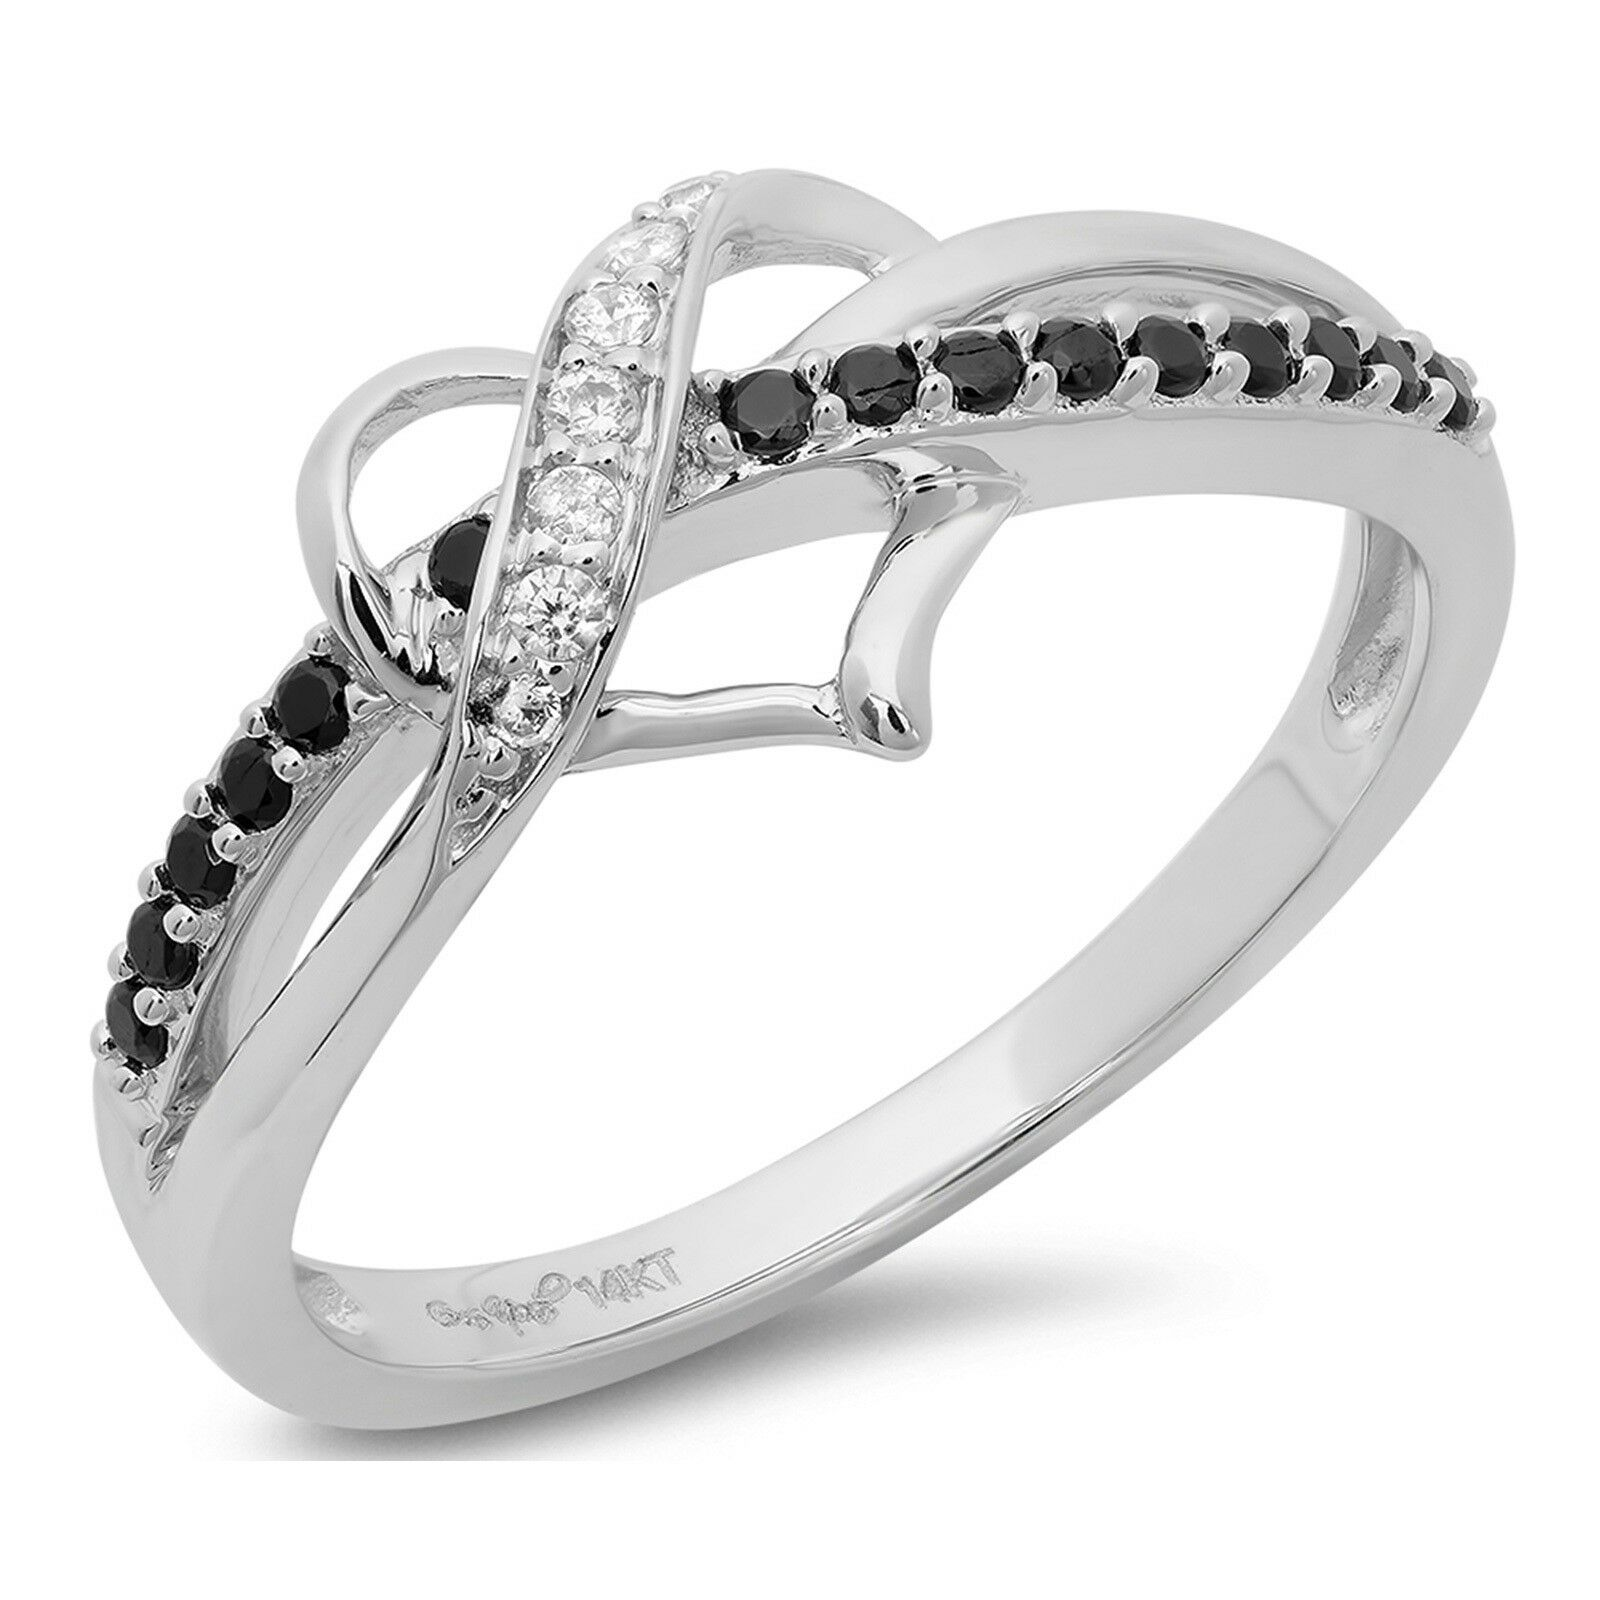 0.2ct Round Cut Heart Solitaire Promise Anniversary Ring Solid 14k White gold